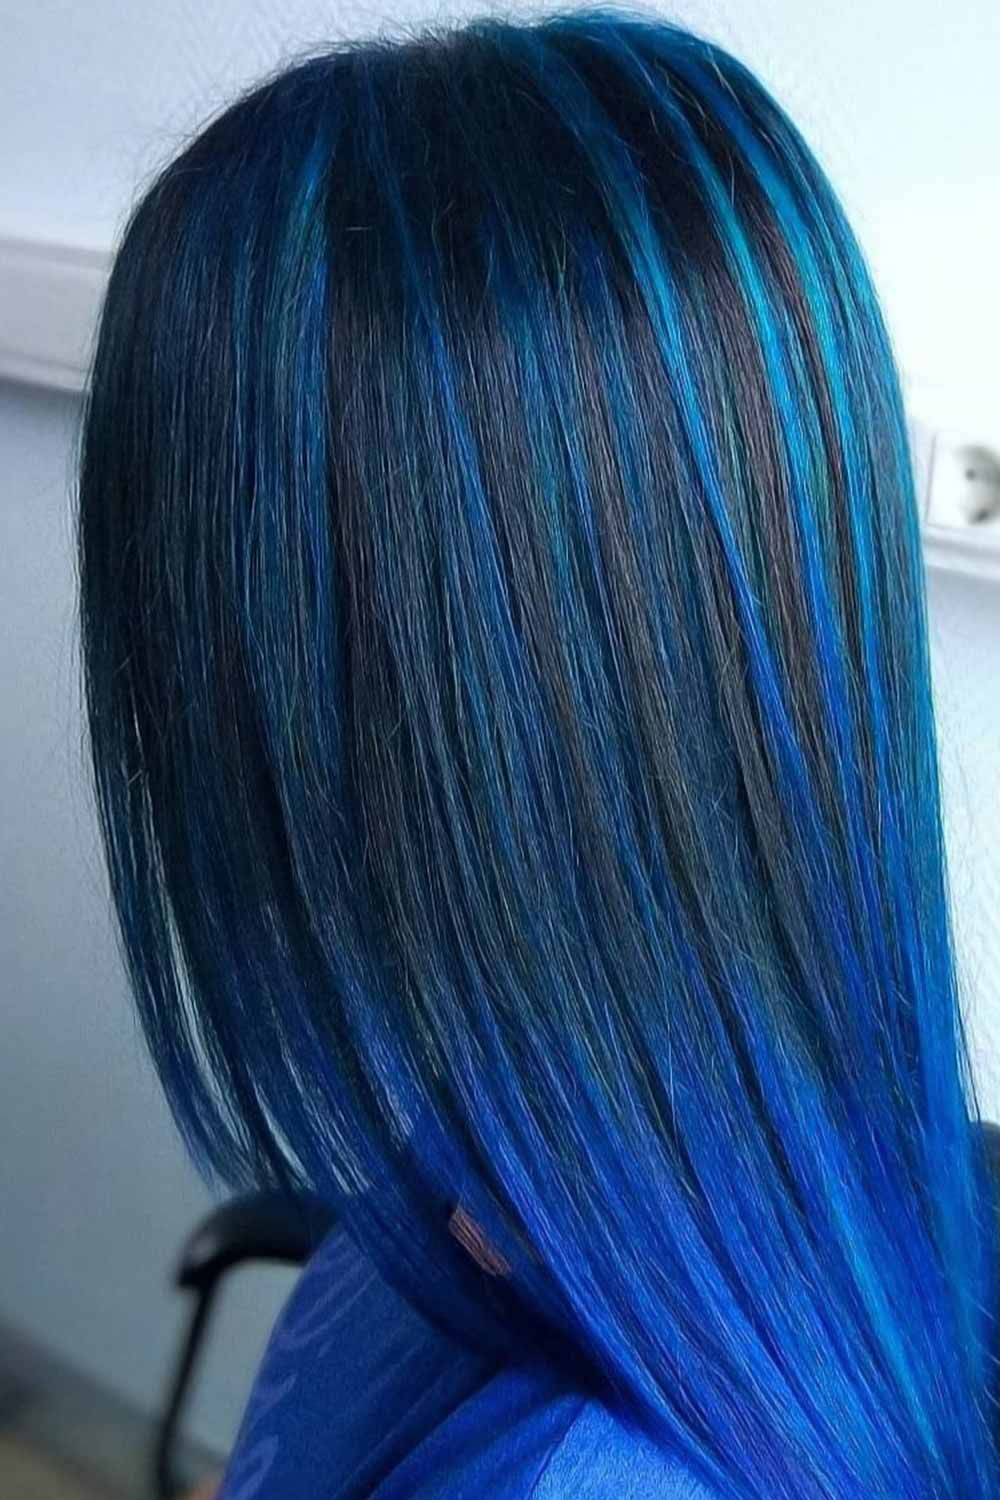 55 Tasteful Blue Black Hair Color Ideas To Try In Any Season In 2020 Hair Color For Black Hair Blue Black Hair Blue Black Hair Color